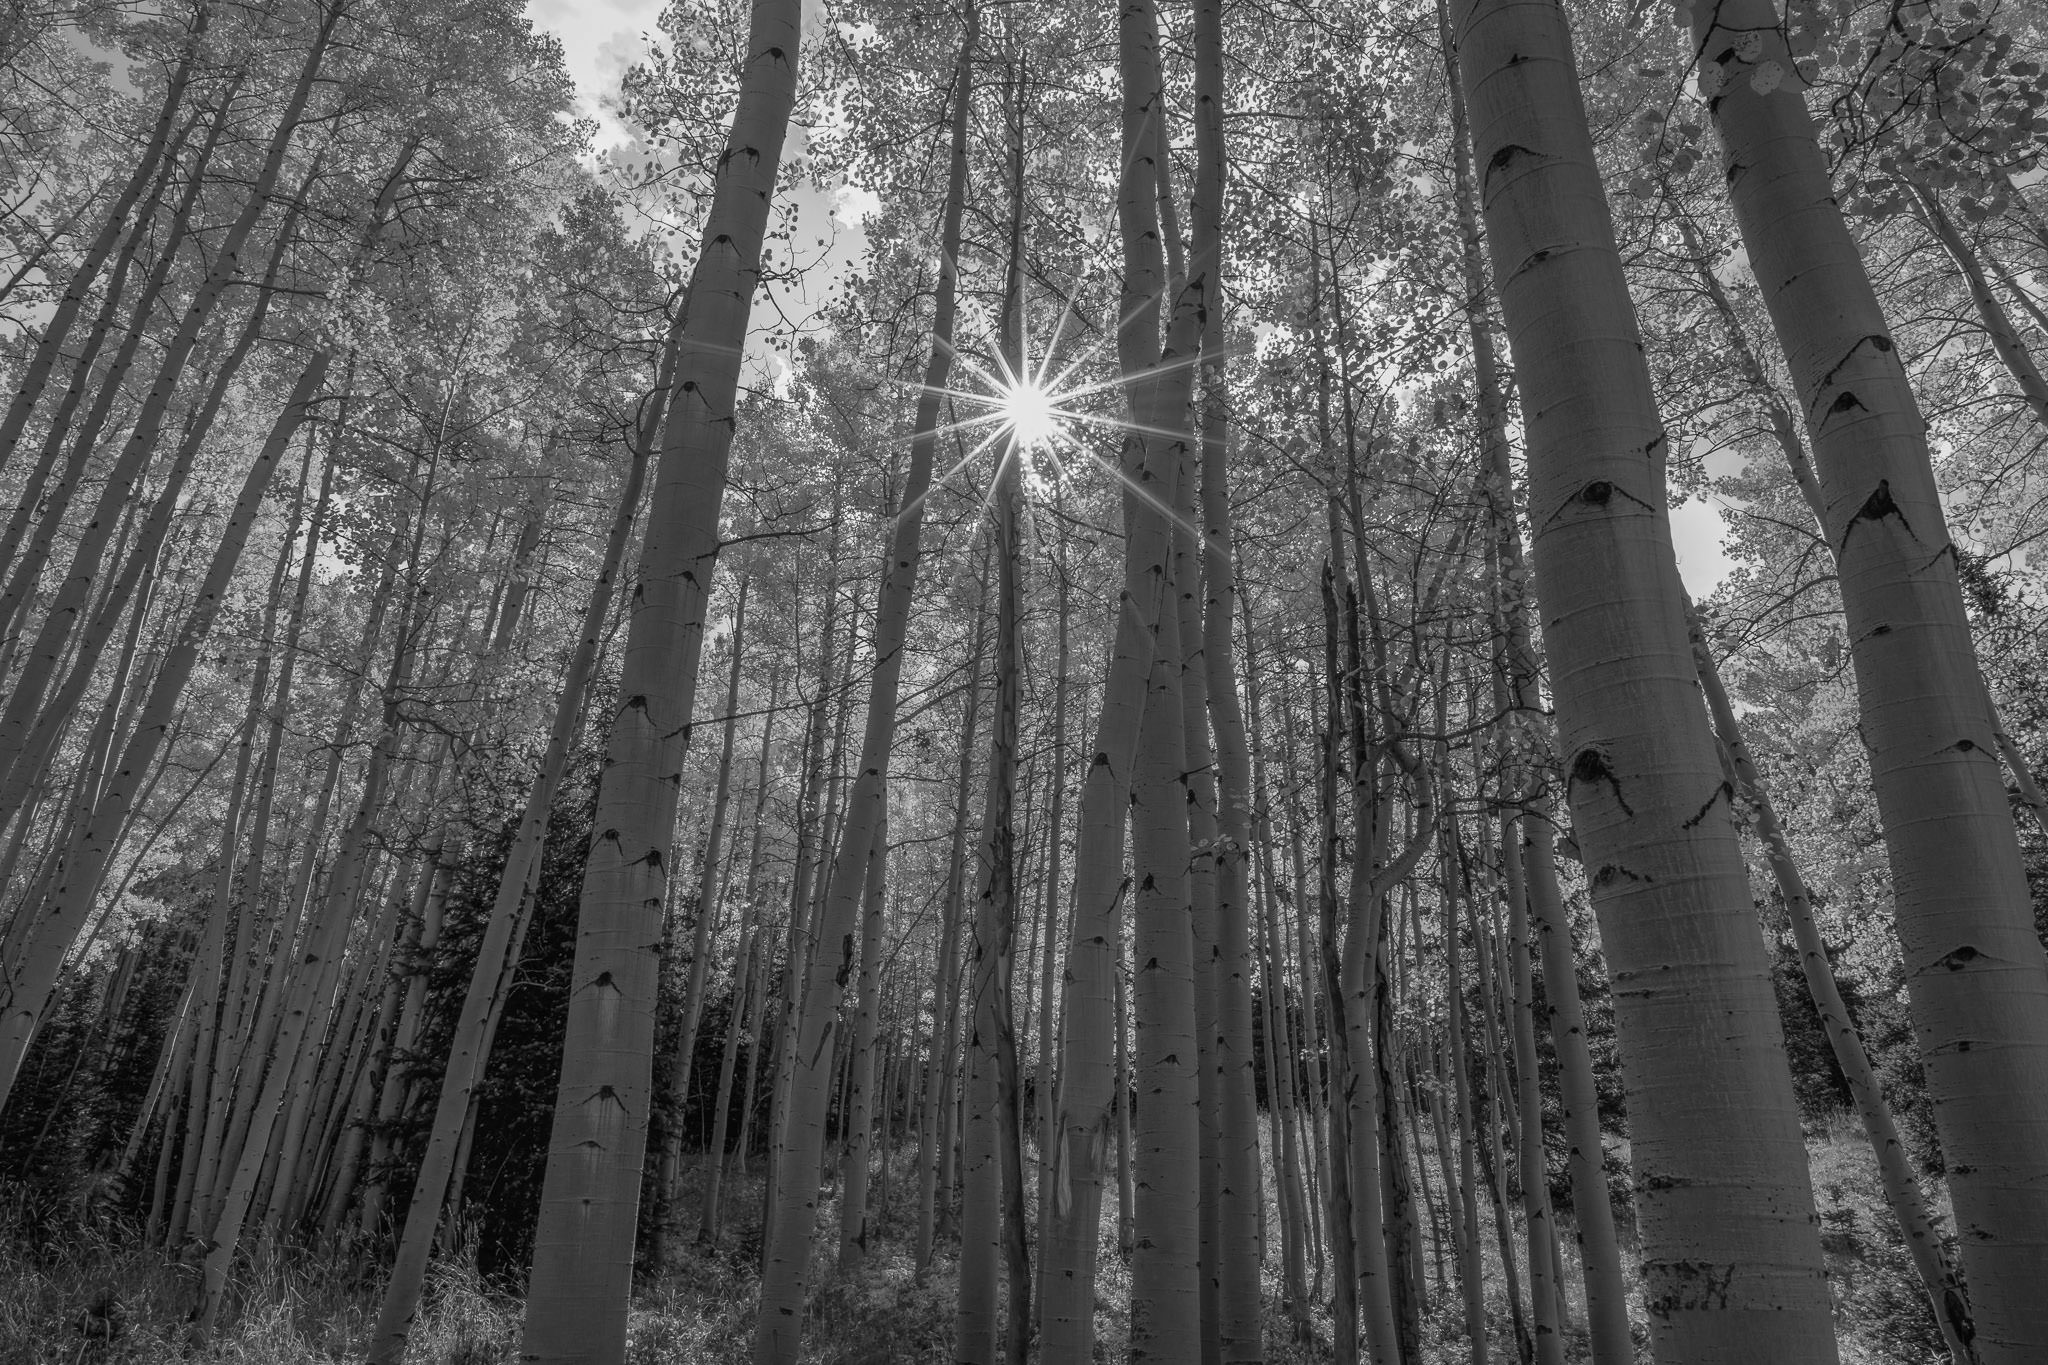 Dark aspens photo nikon d800e 20mm f 1 8 20mm iso 100 1 30